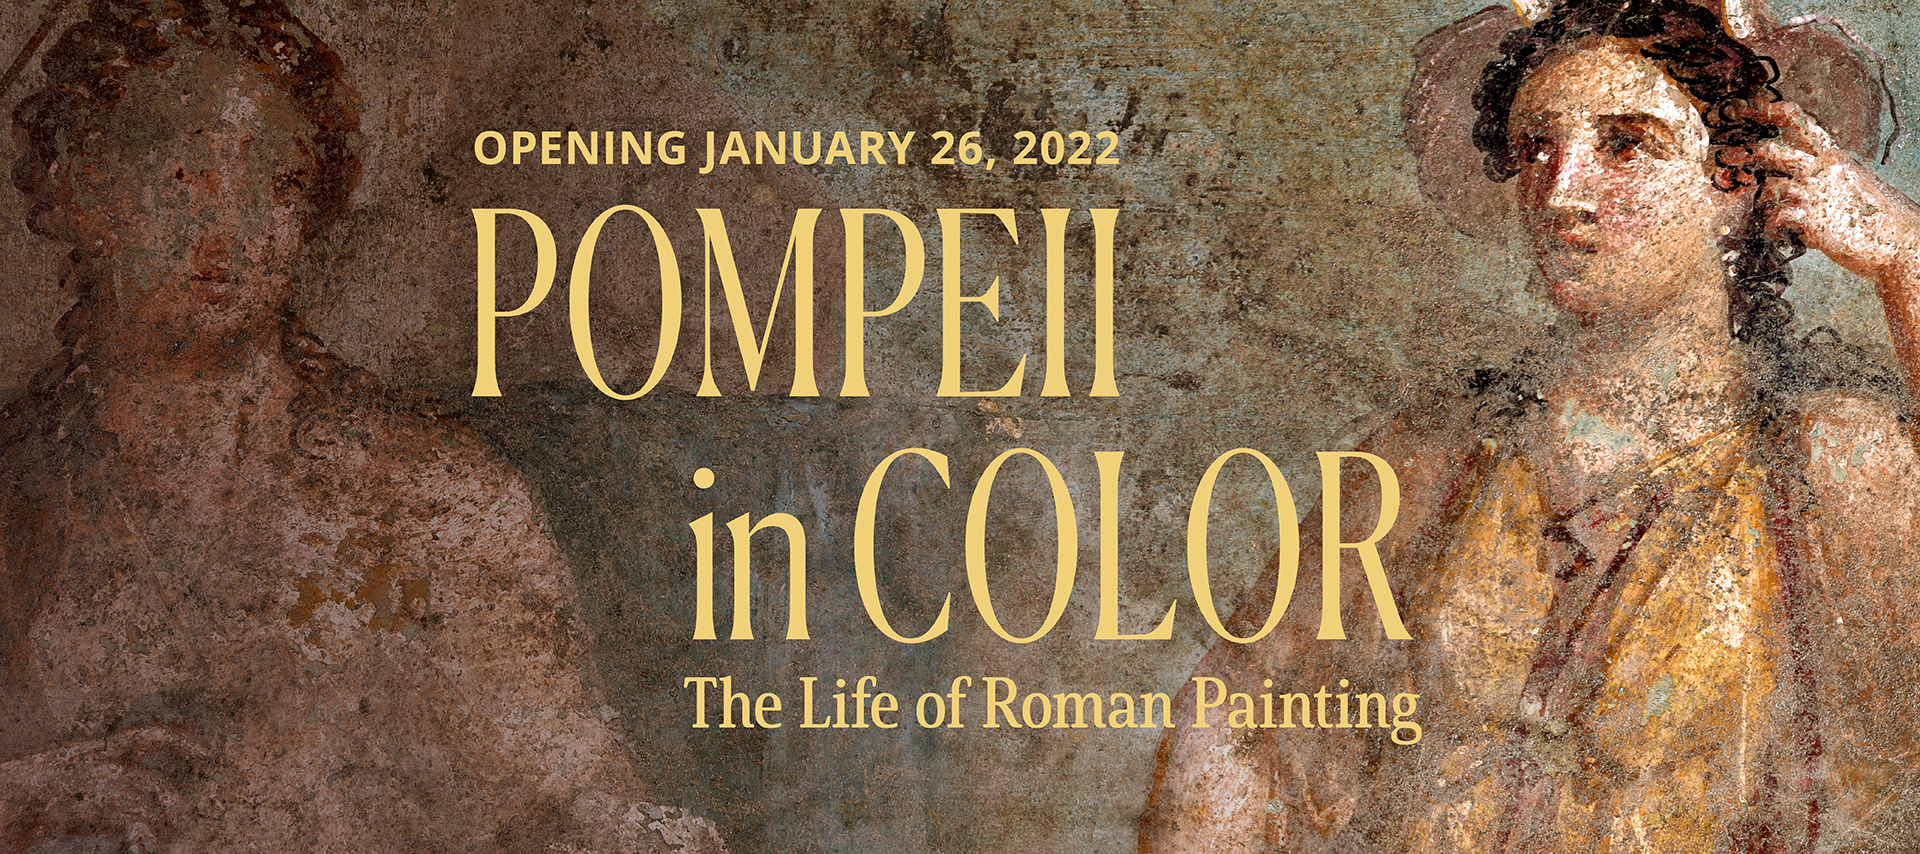 Announcing the next upcoming exhibition, Pompeii in Color, The Life of Roman Painting